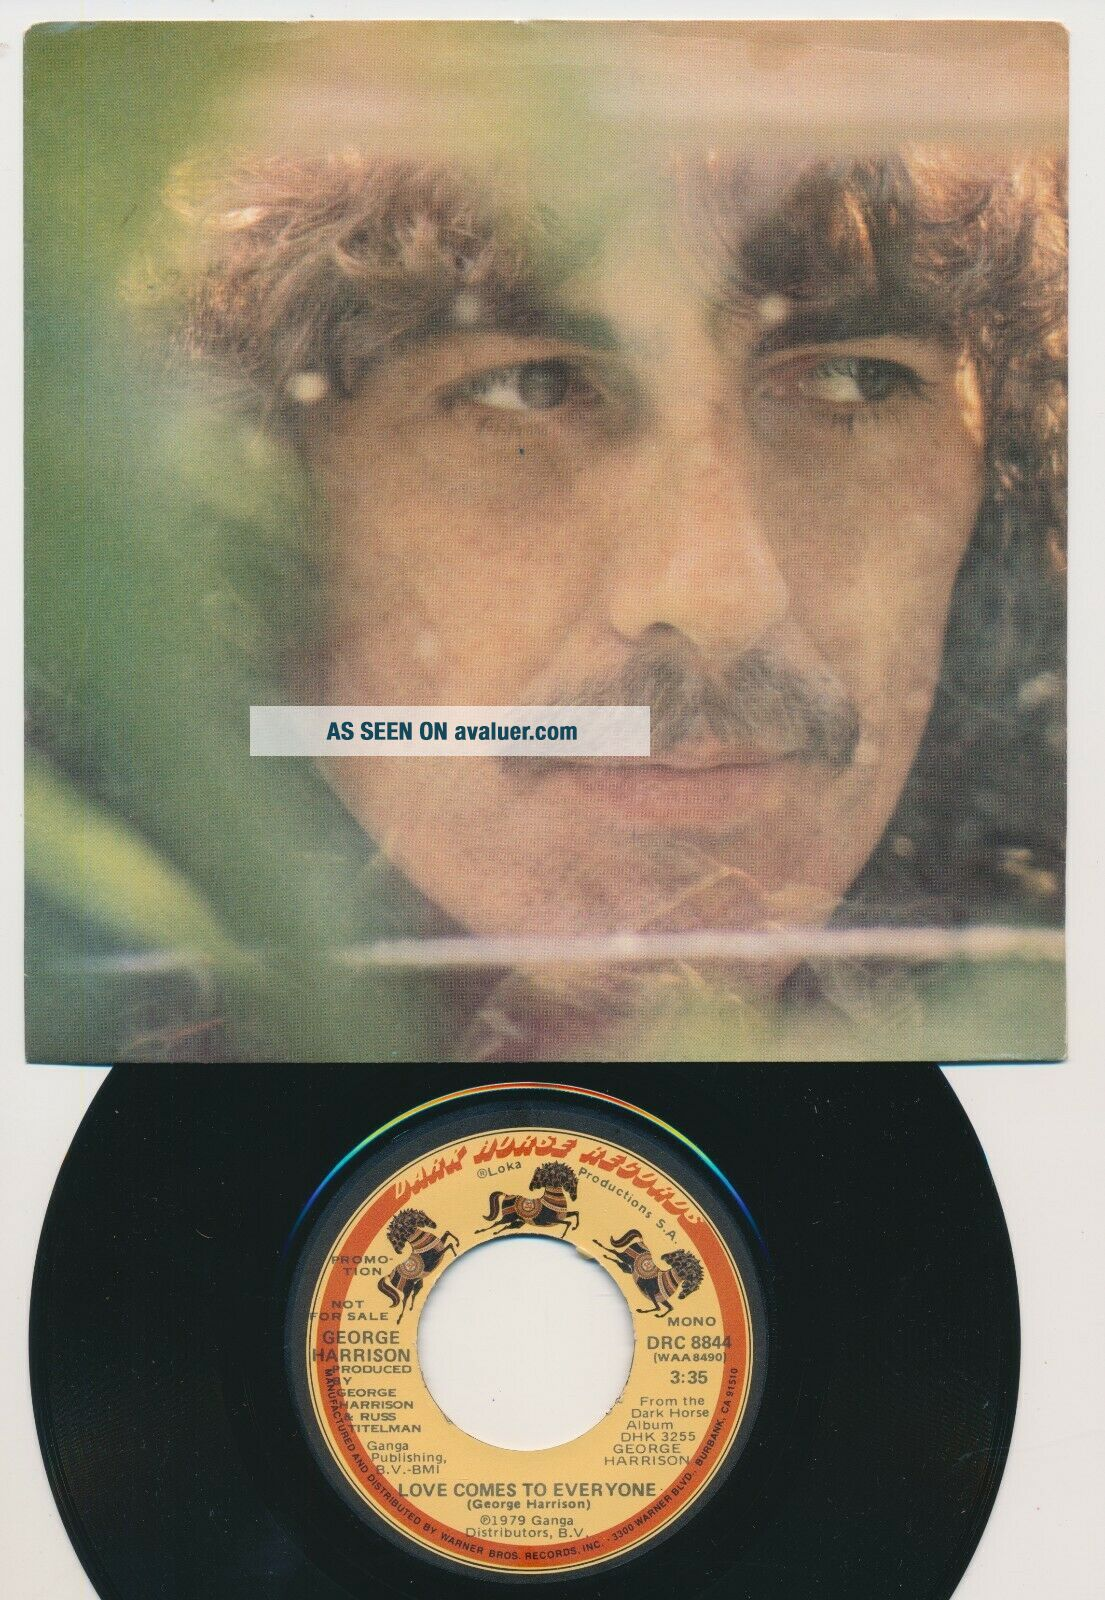 Beatles ULTRA RARE GEORGE HARRISON ' LOVE COMES TO EVERYONE ' PICTURE SLEEVE